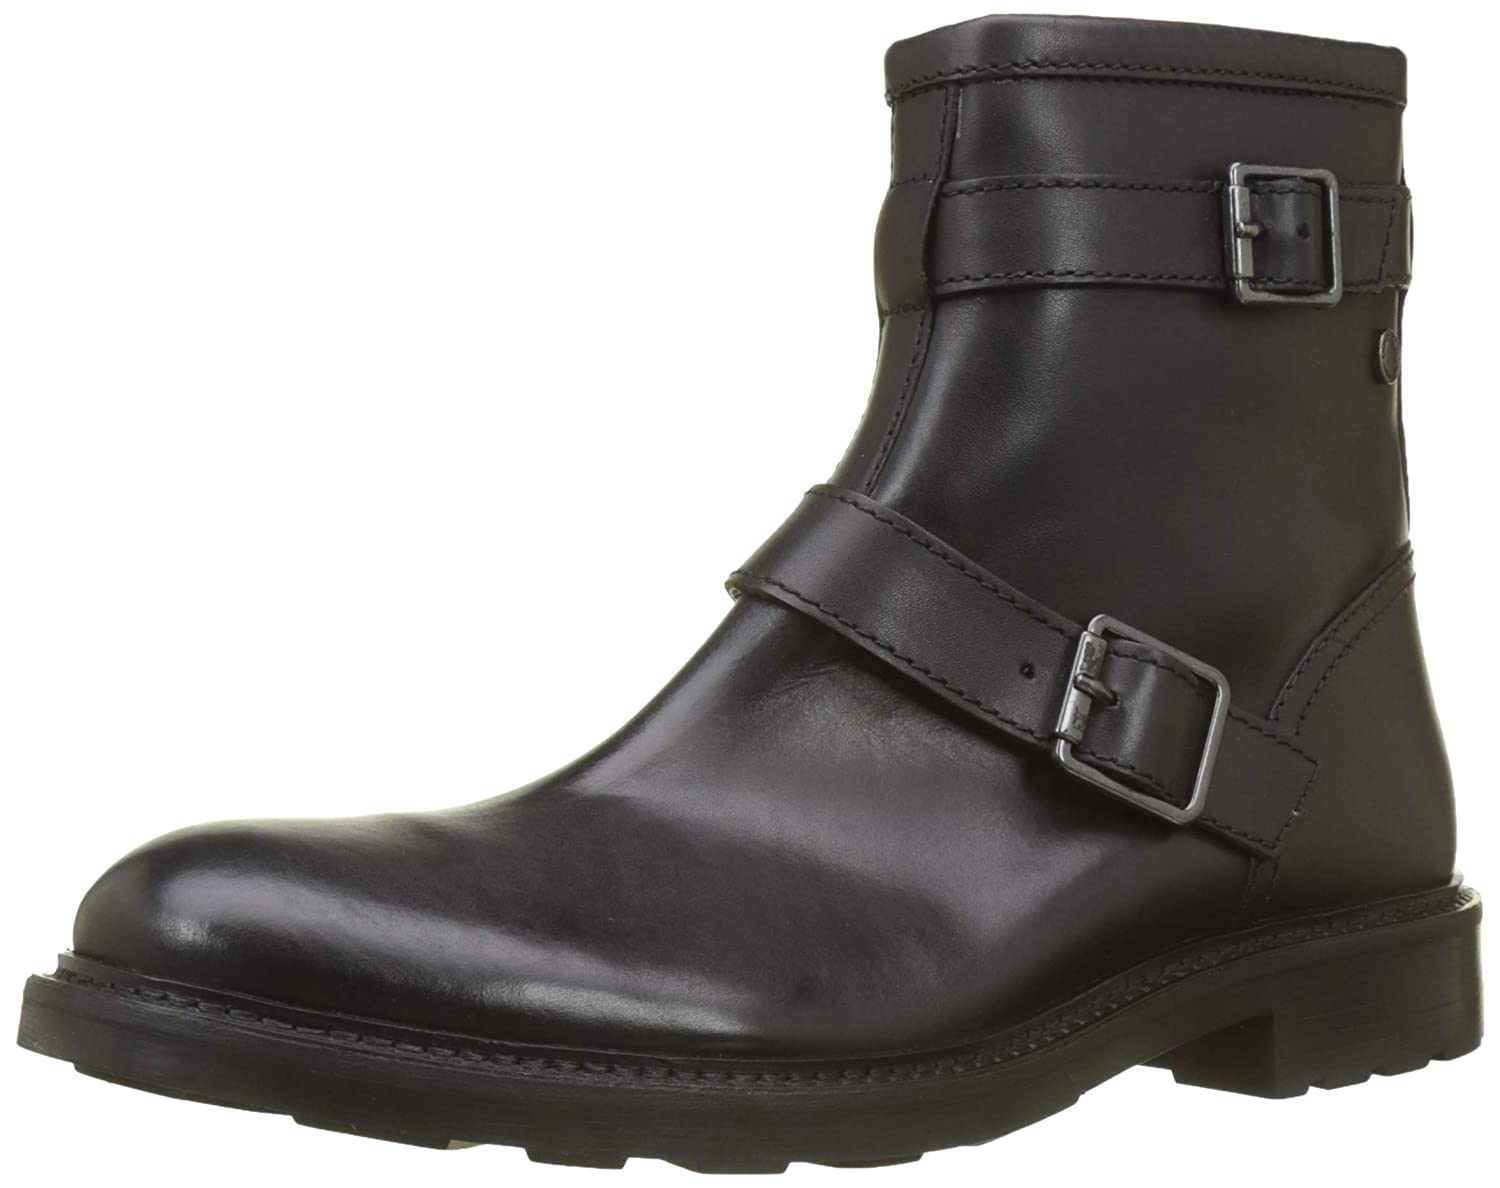 TALLA 40 EU. Base London Ortiz - Botas Estilo Motero Hombre